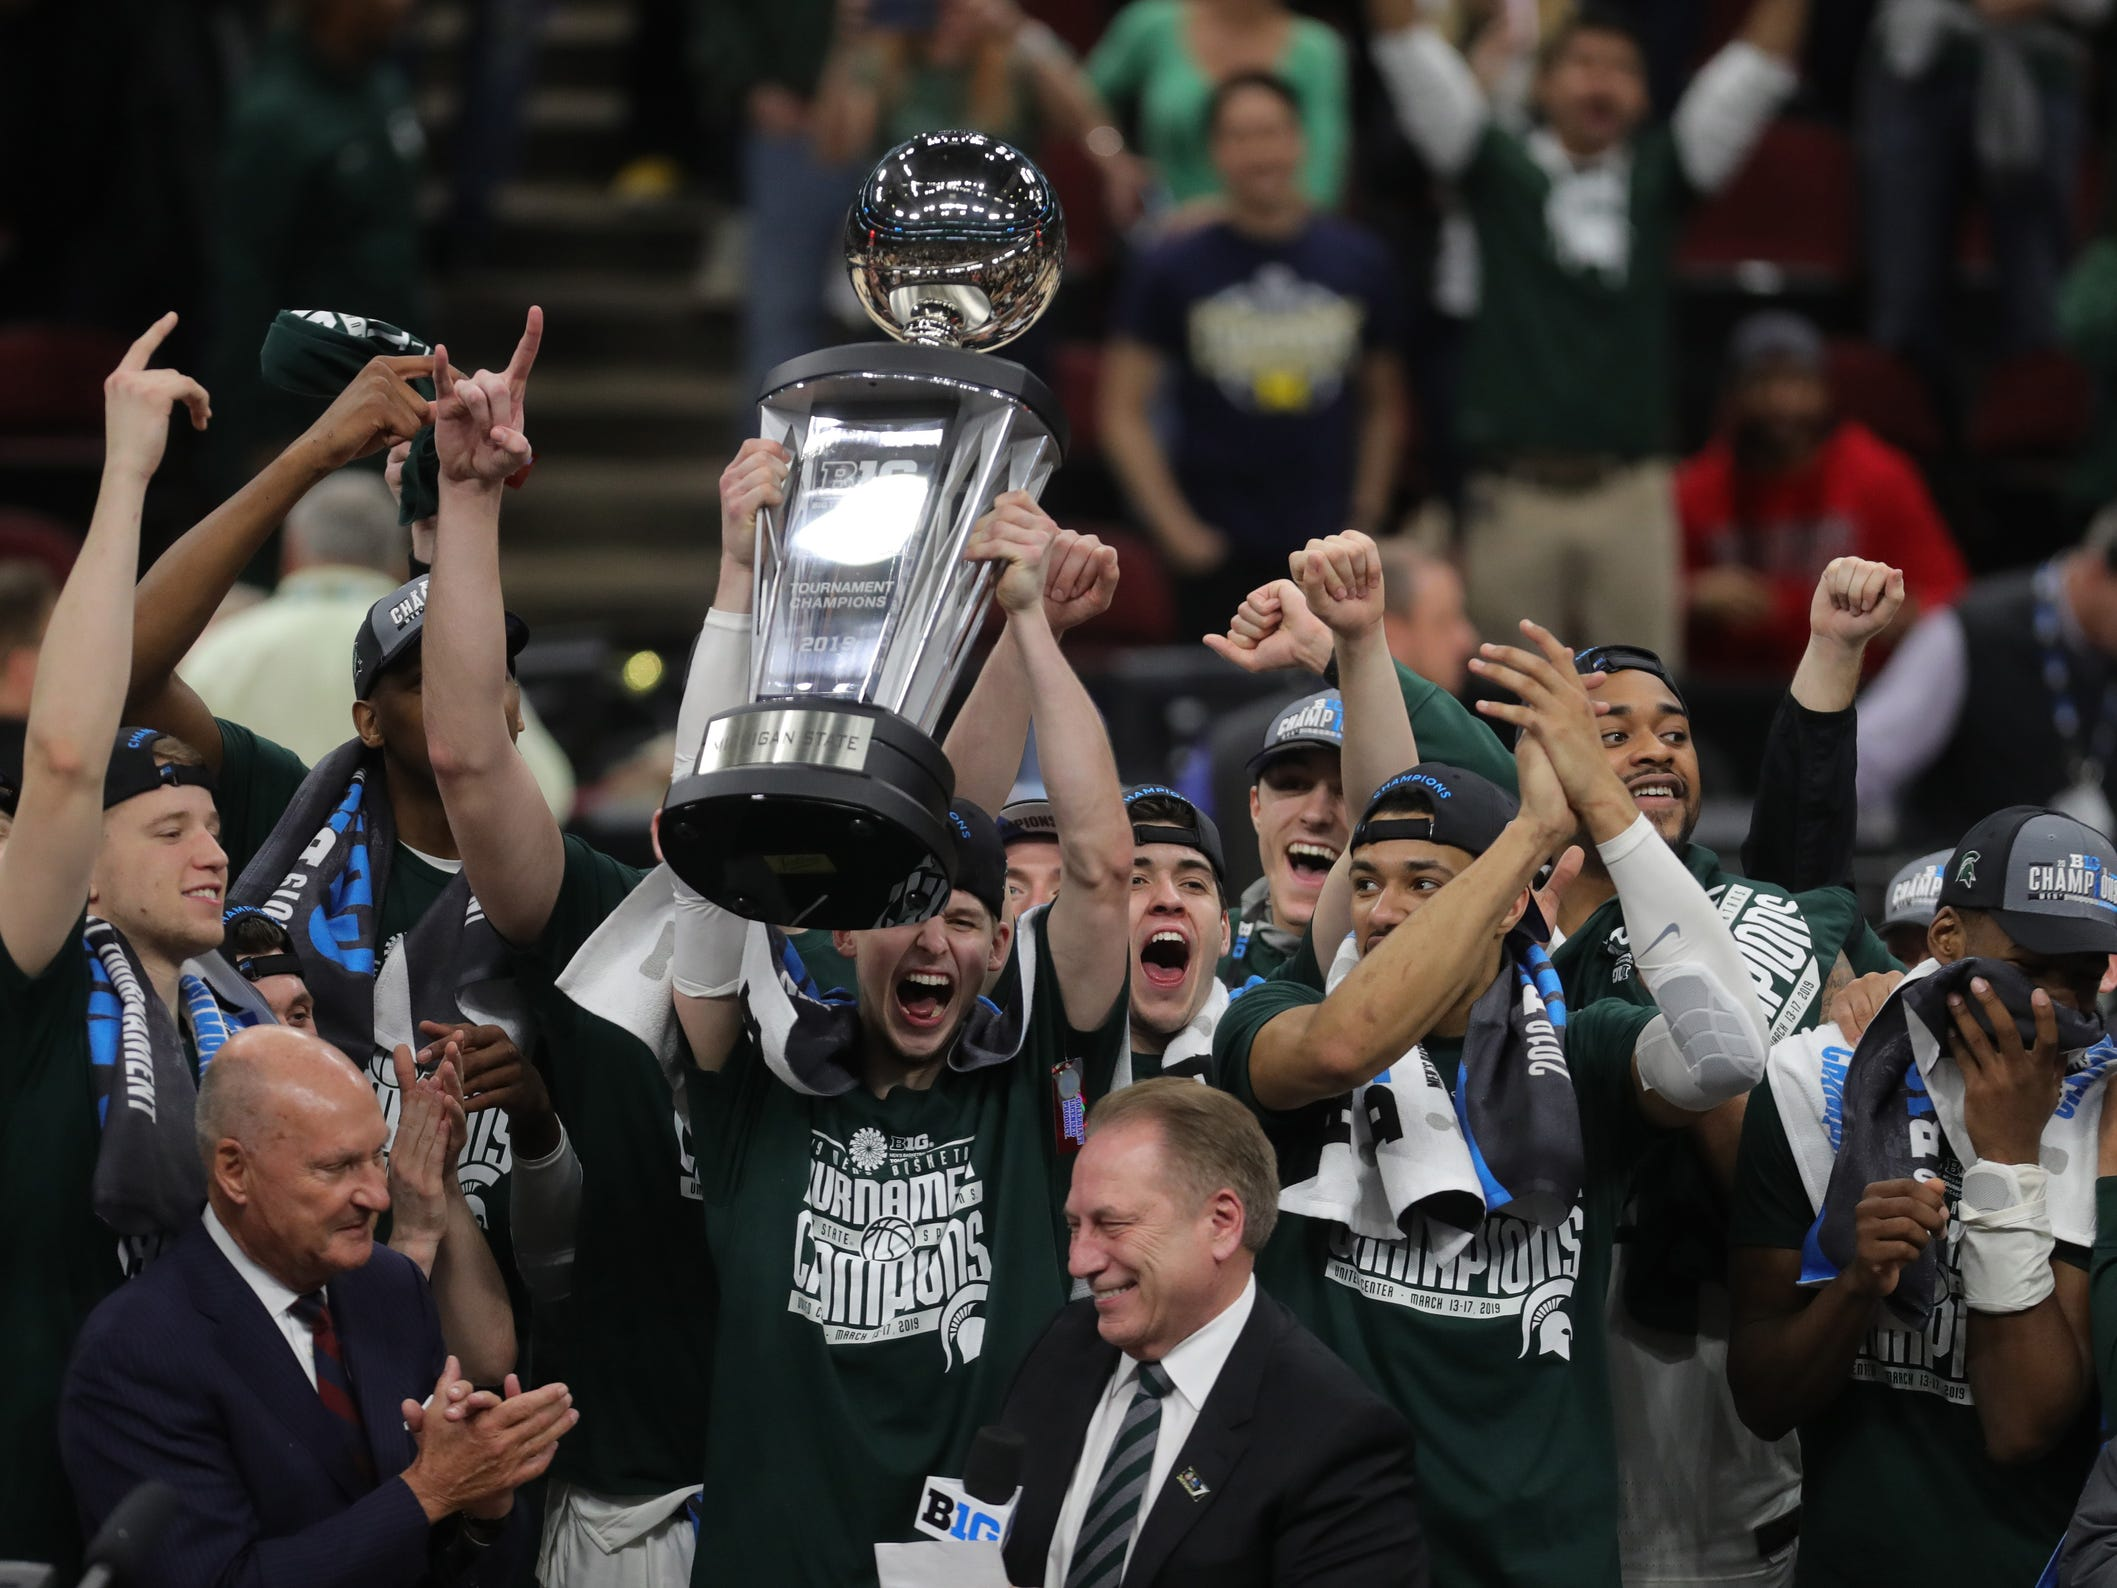 Matt McQuaid accepts the Big Ten tournament championship trophy after Michigan State defeated Michigan, 65-60, Sunday, March 17, 2019 at the United Center in Chicago.